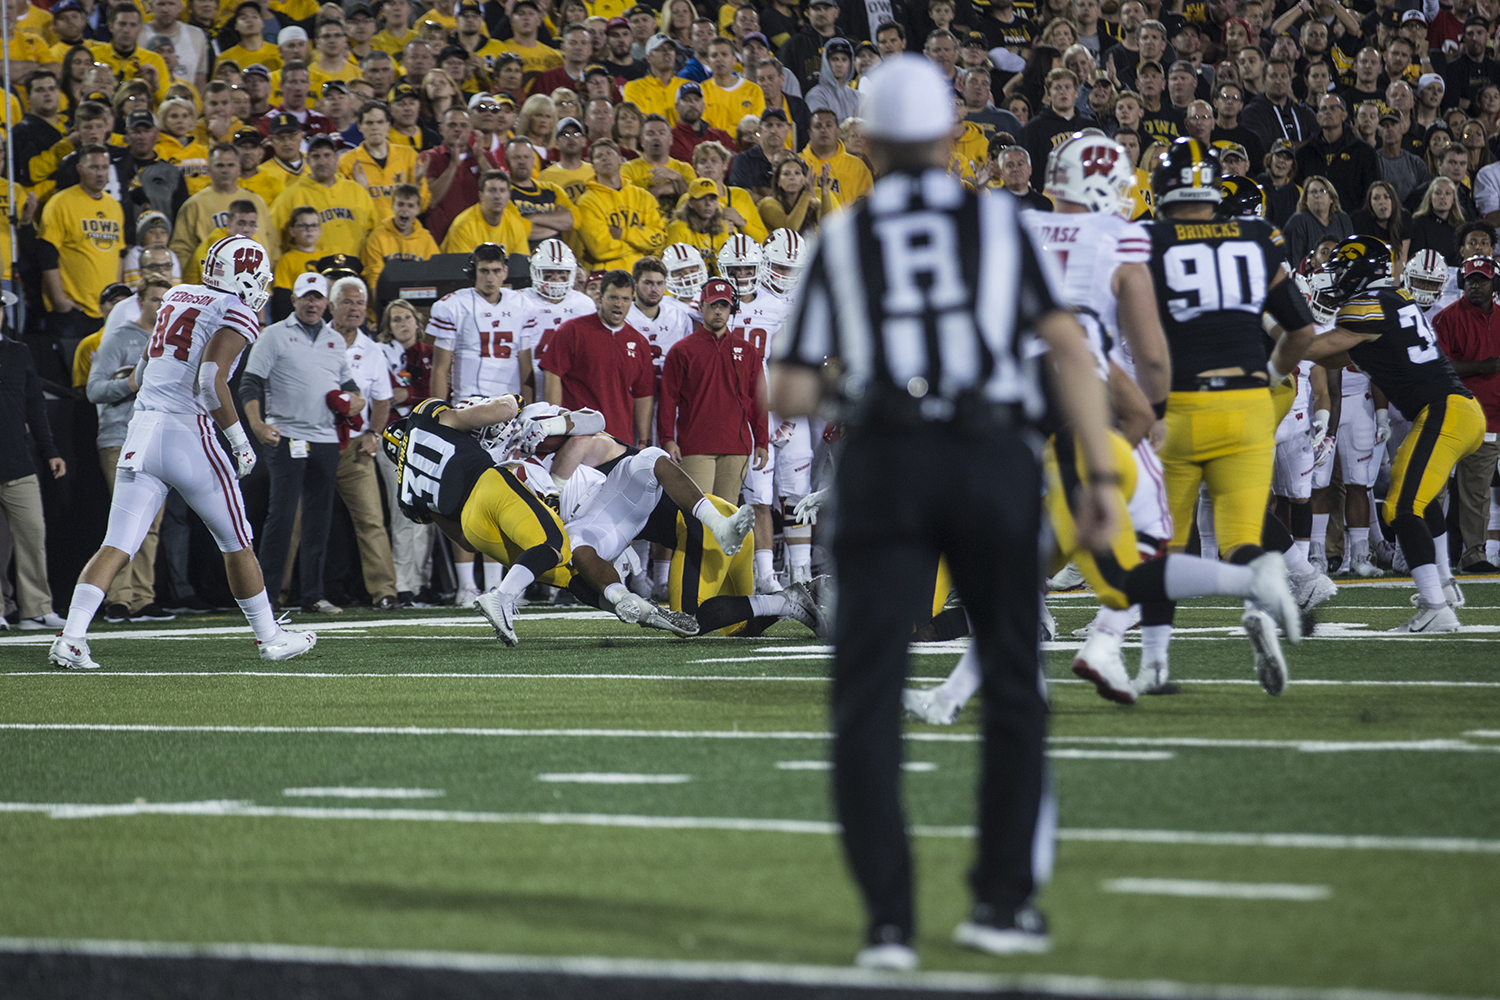 Iowa%27s+Jake+Gervase+tackles+a+running+back+during+a+football+game+between+Iowa+and+Wisconsin+on+Saturday%2C+September+22%2C+2018.+The+Badgers+defeated+the+Hawkeyes%2C+28-17.+%28Shivansh+Ahuja%2FThe+Daily+Iowan%29